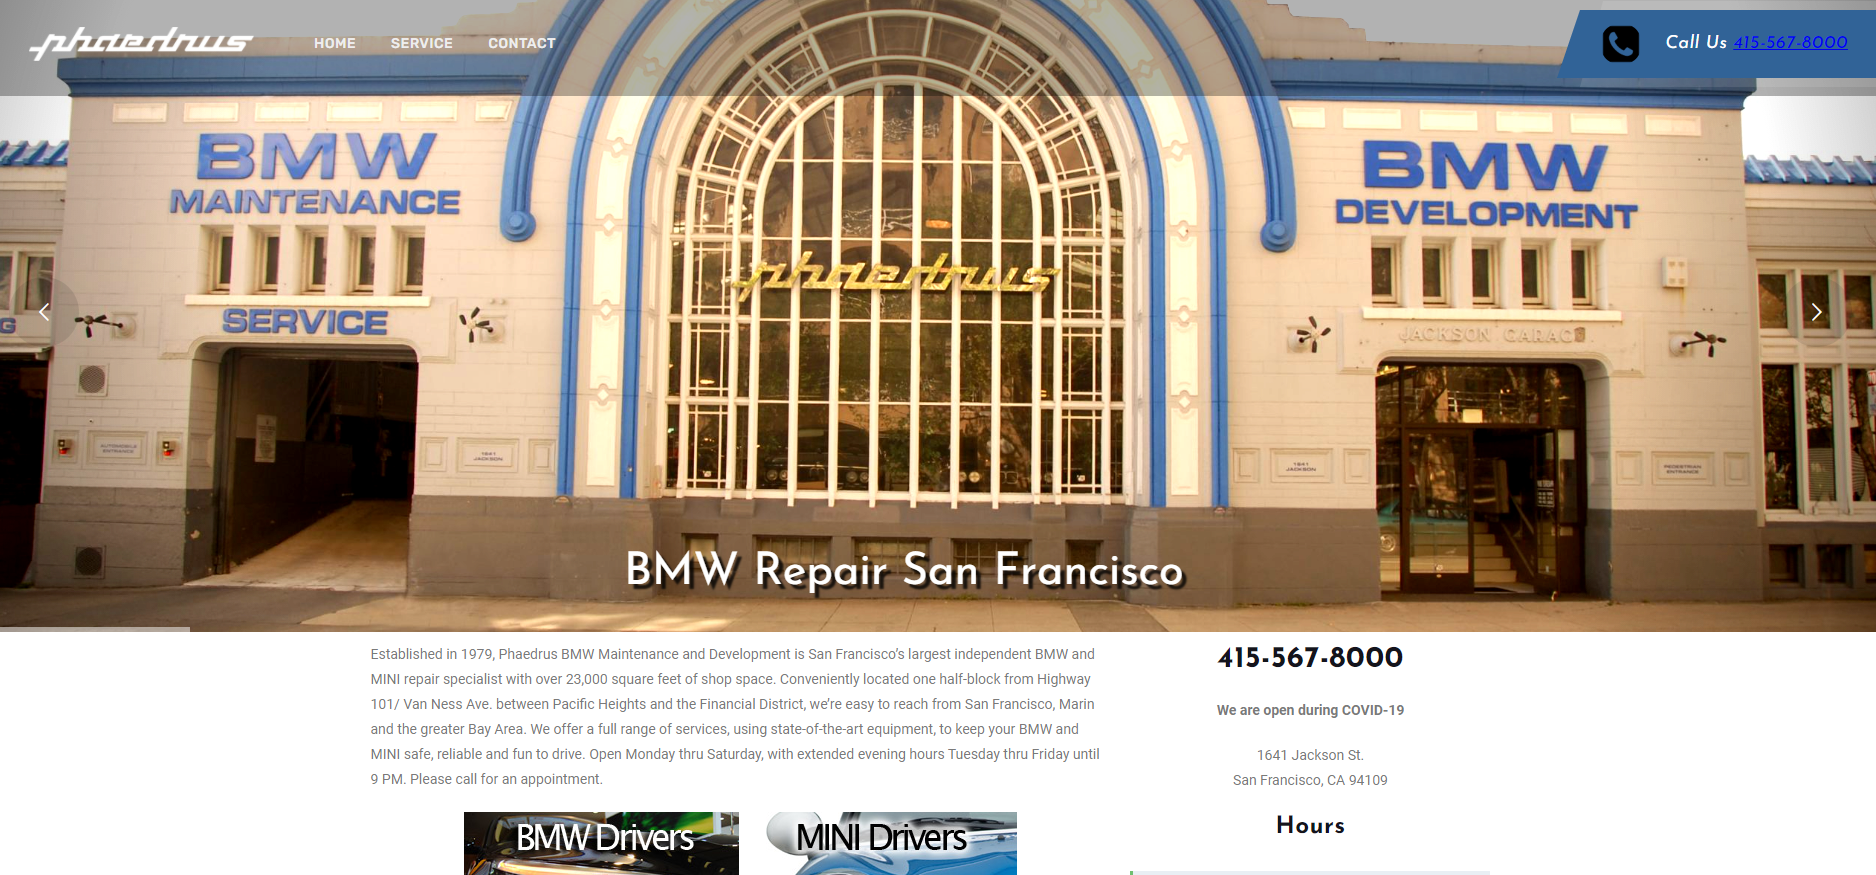 5 BMW Dealers in San Francisco